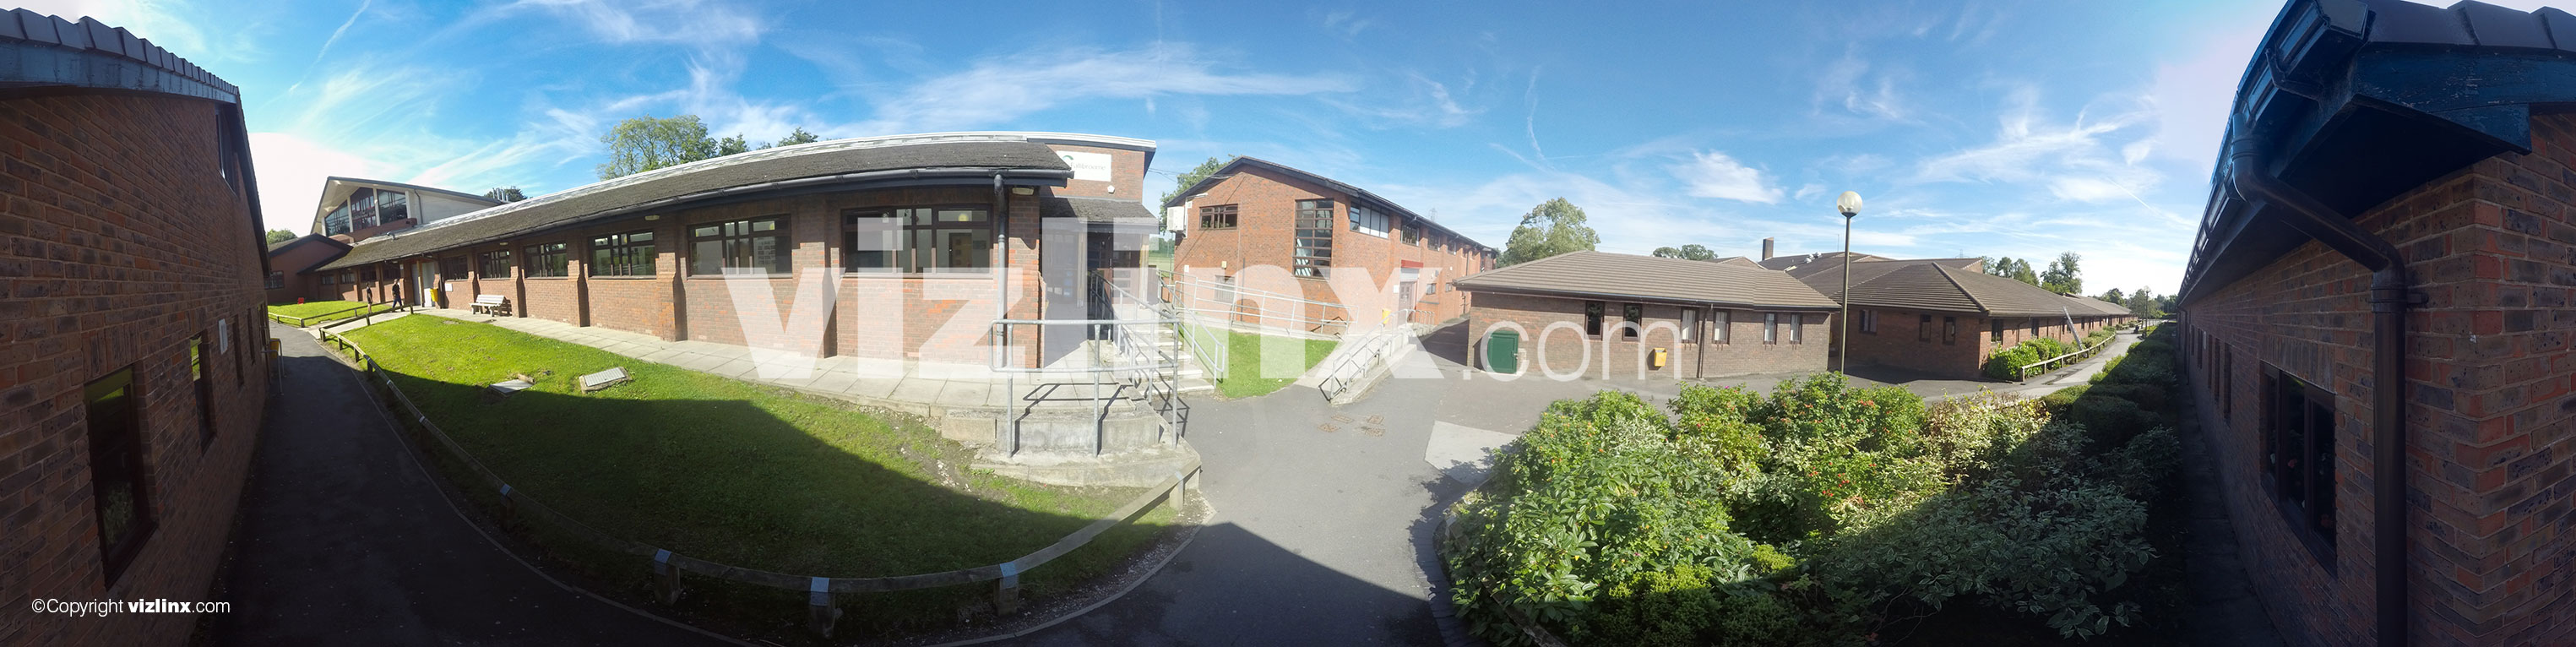 360 panorama of Fallibroome Academy Macclesfield